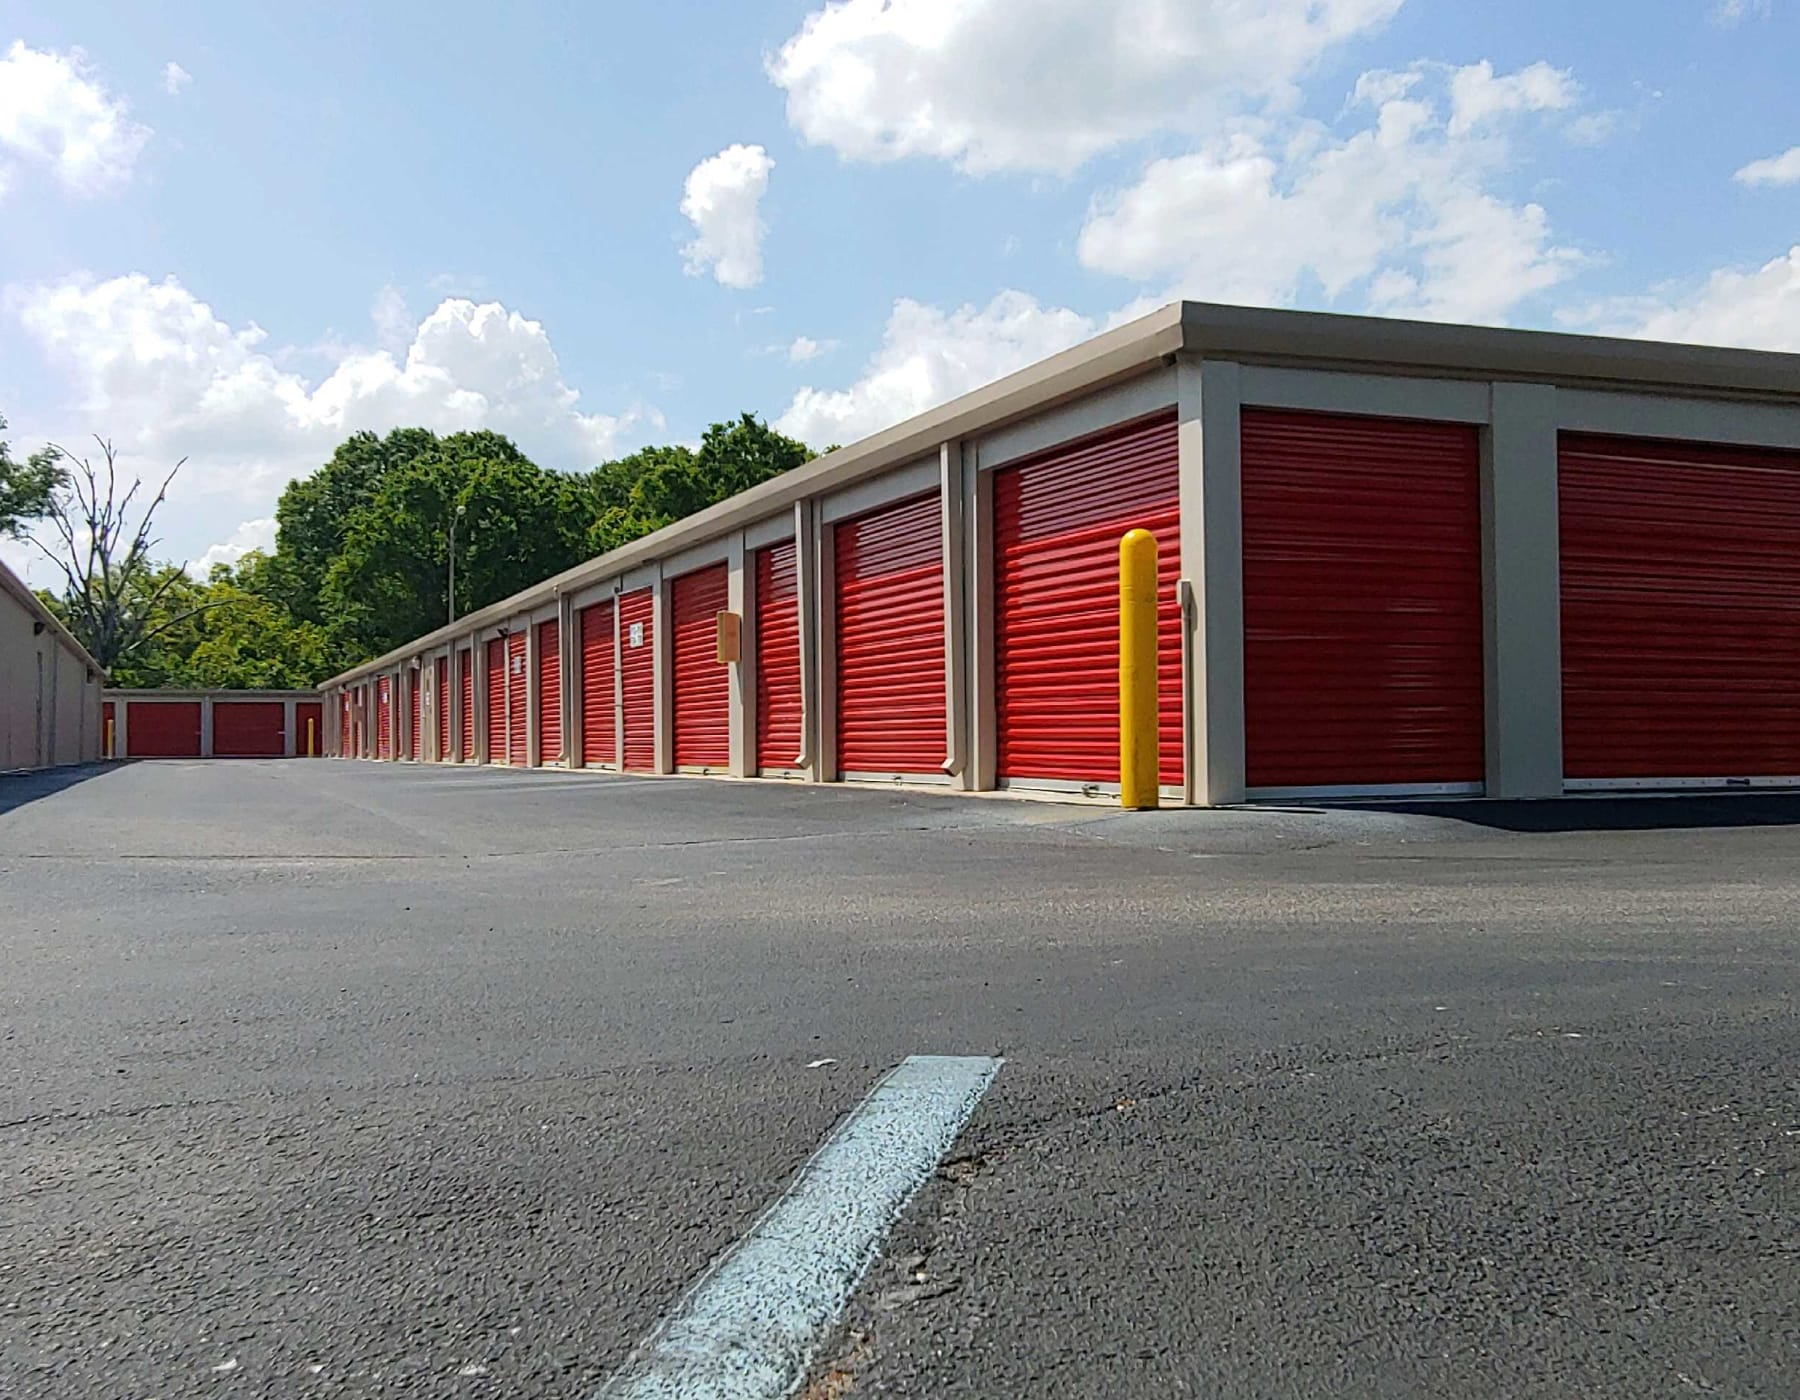 Exterior units at StorQuest Self Storage in Odessa, FL